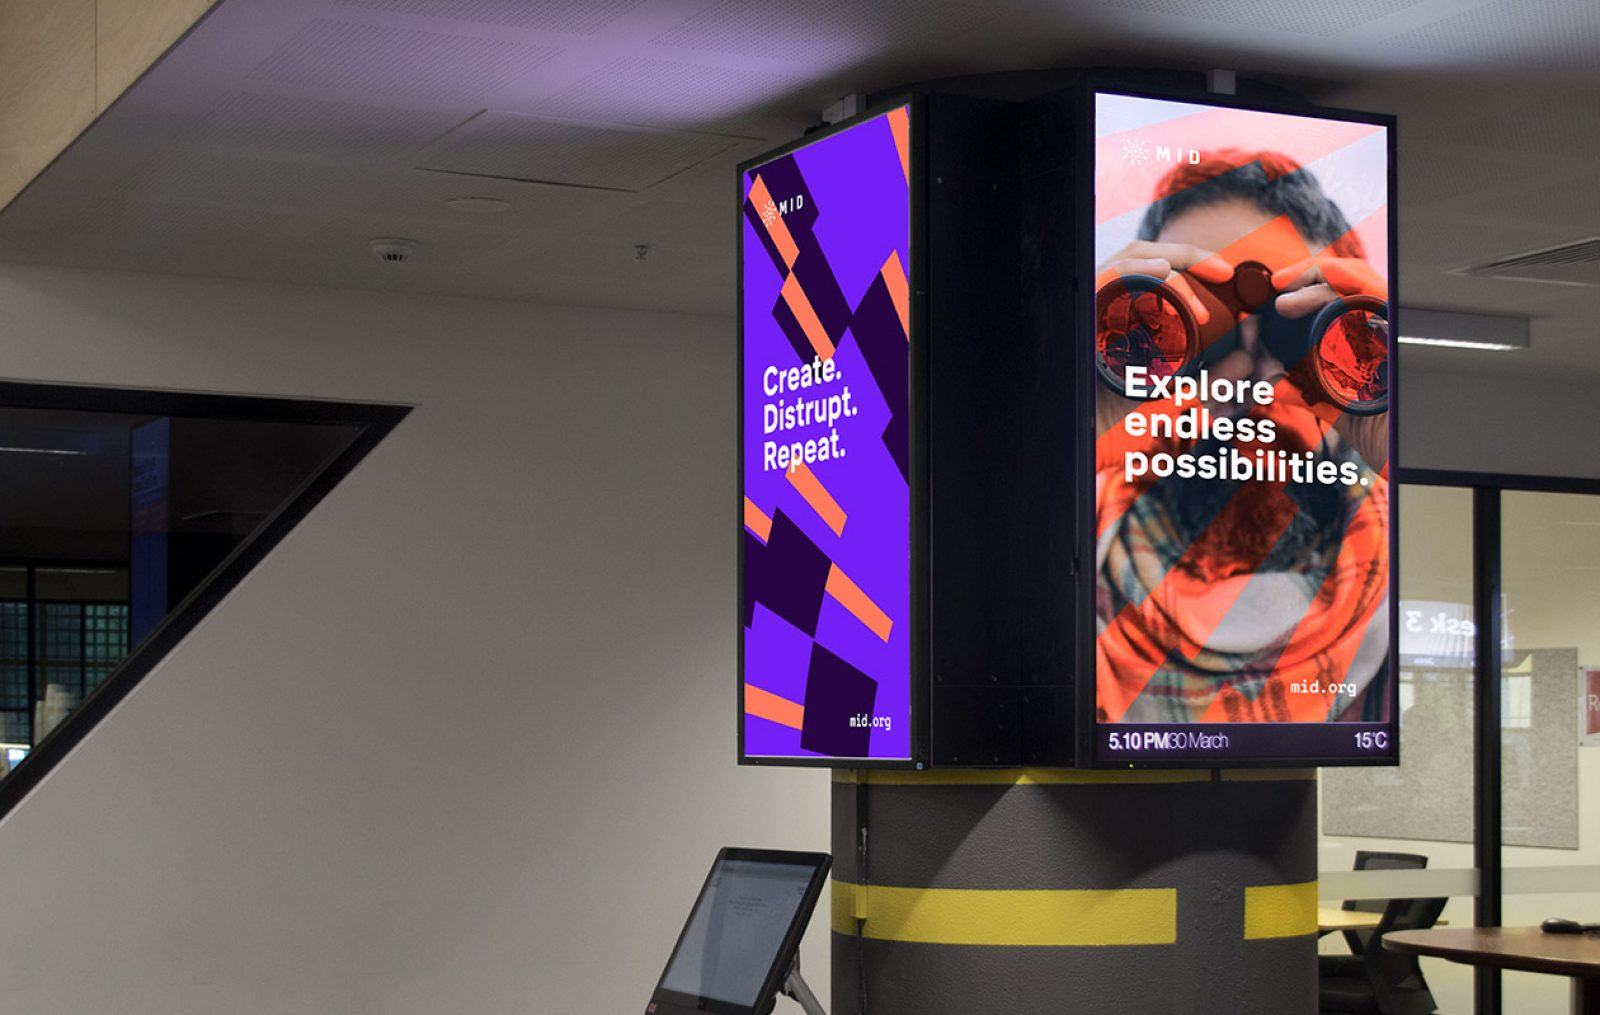 MID-branded digital screens in a university campus setting